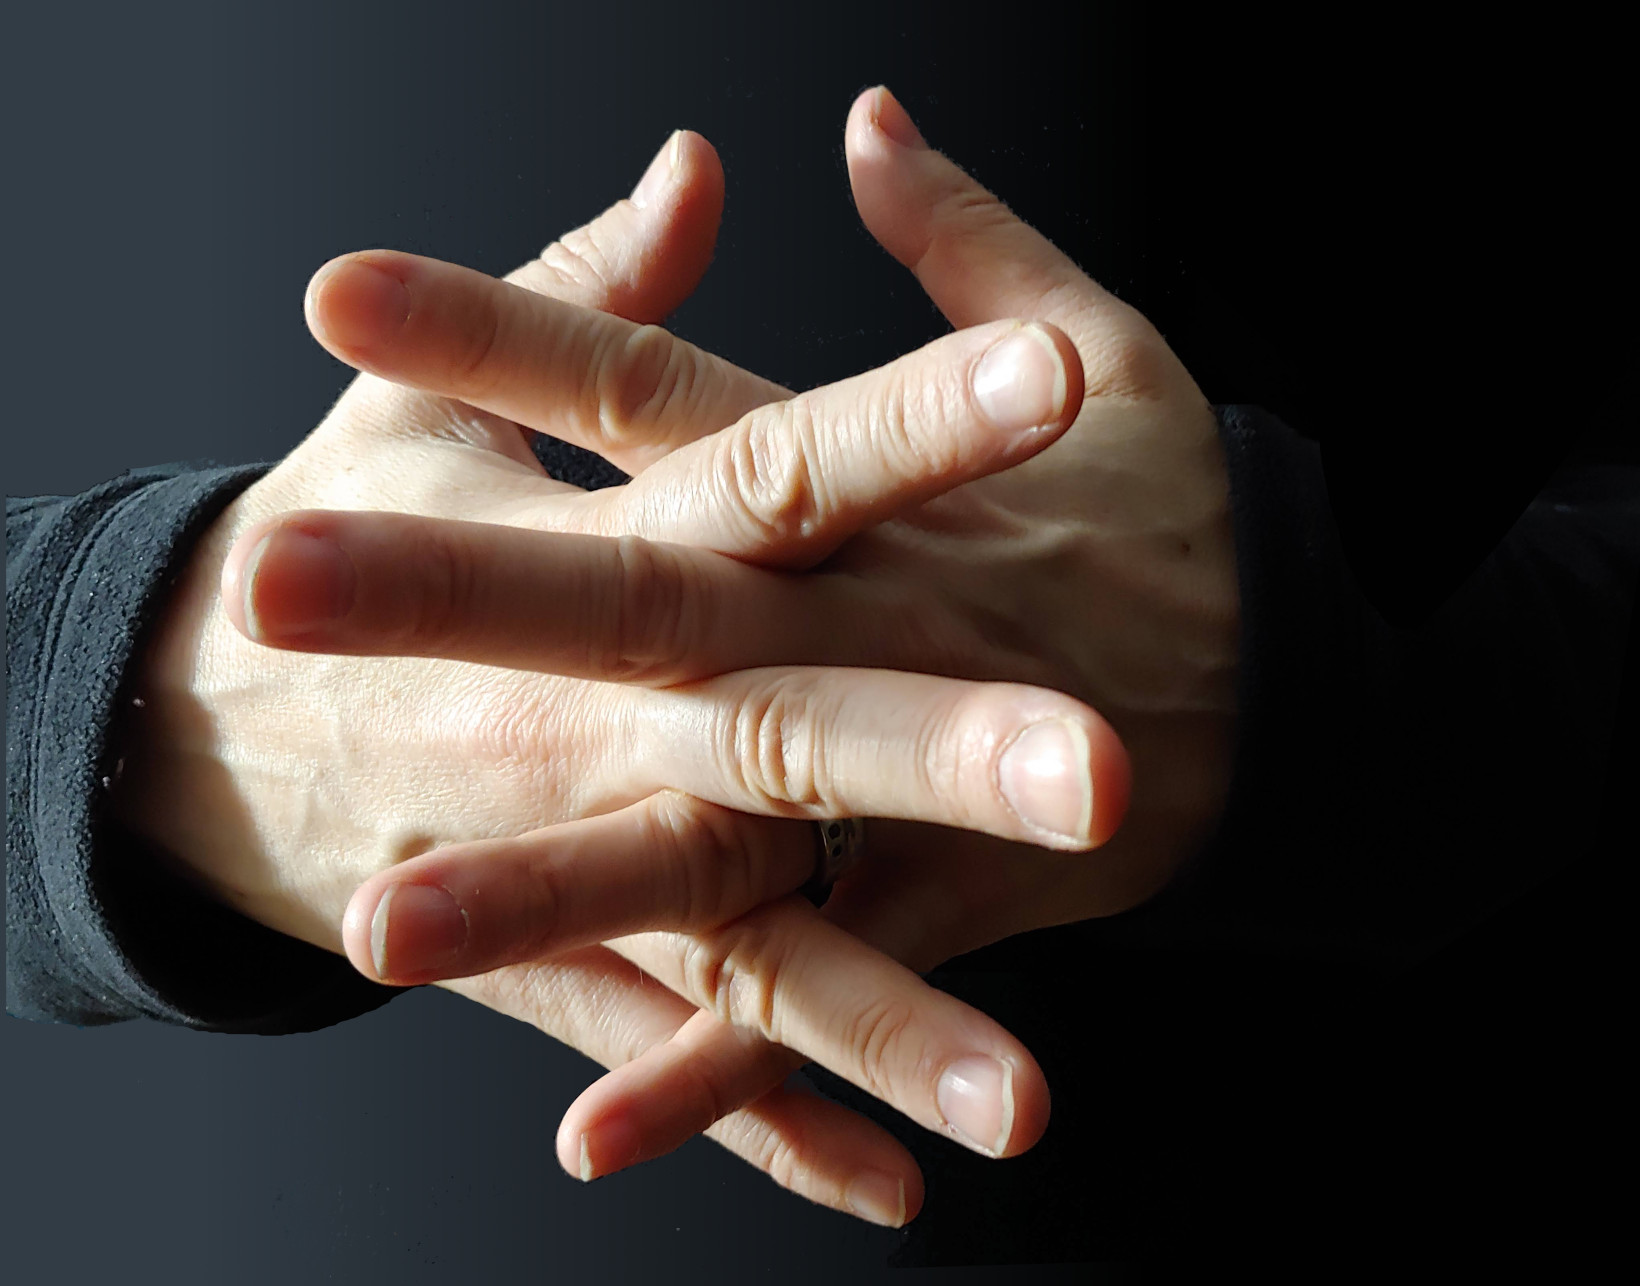 pair of hands with fingers interleaved, at cross angles